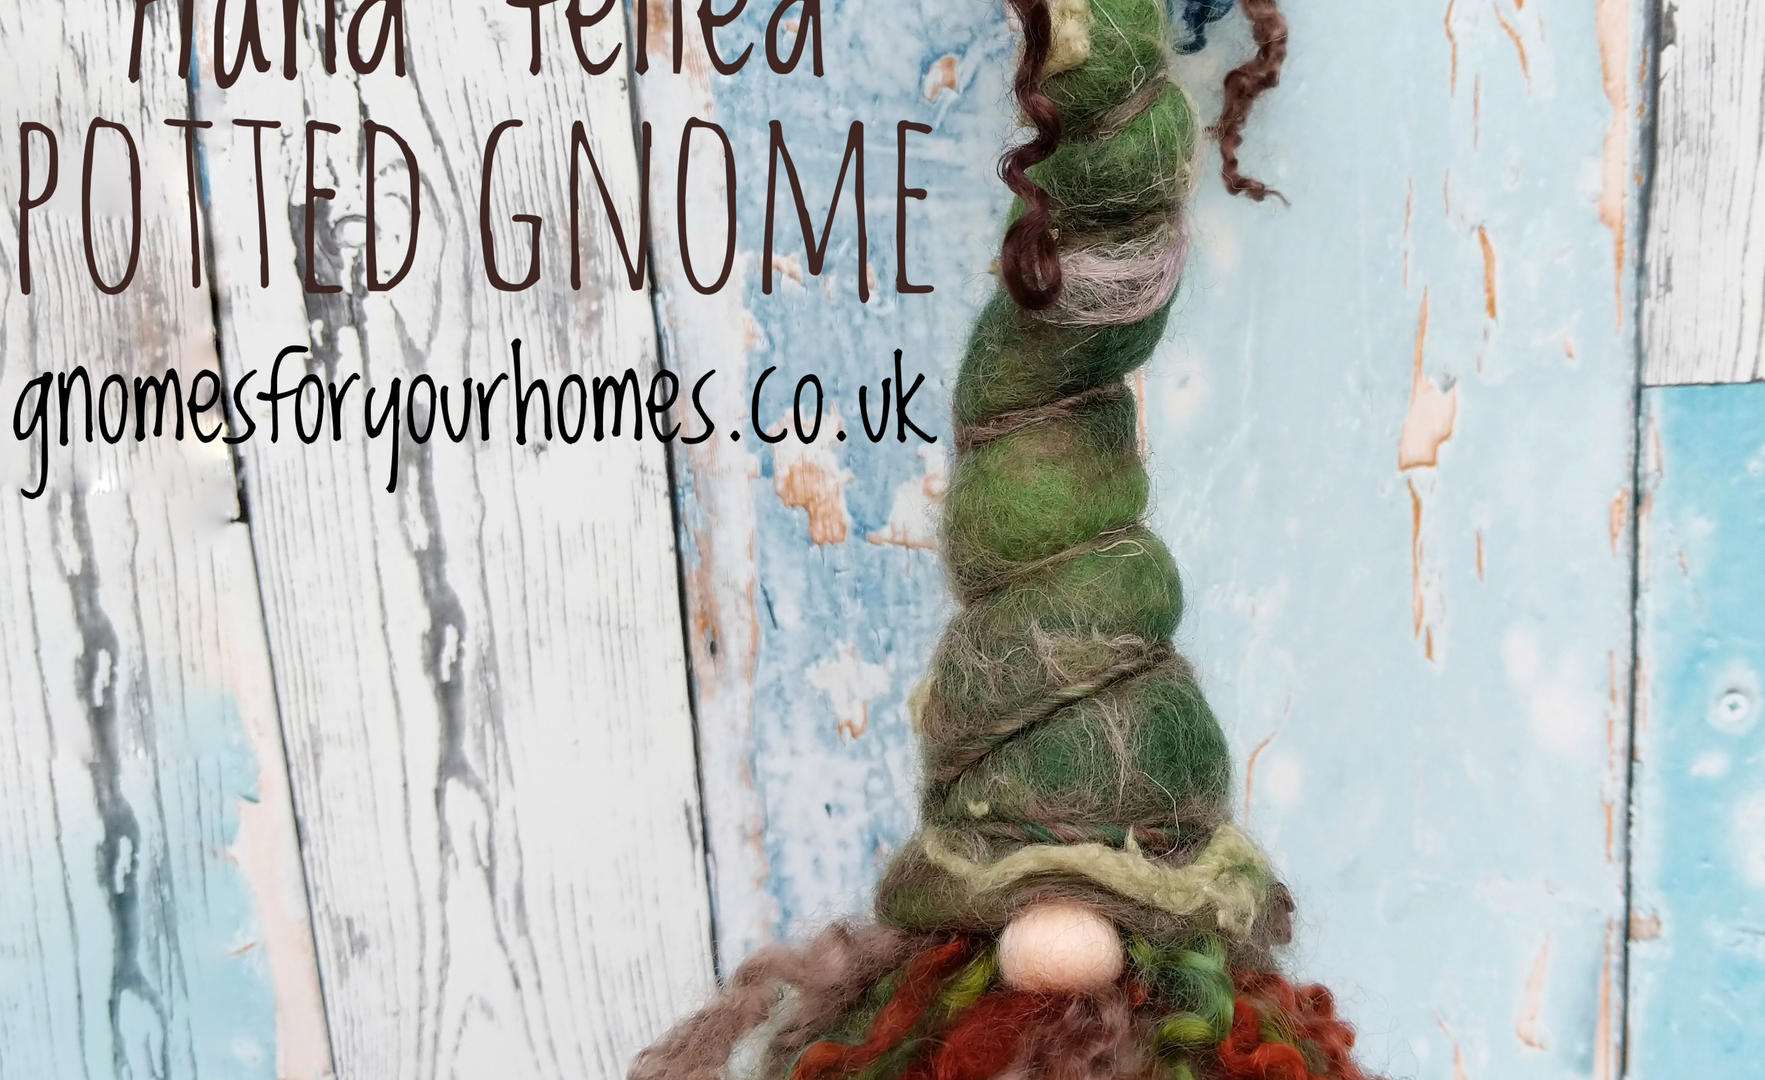 Mossy Rock, Potted Gnome For Your Home